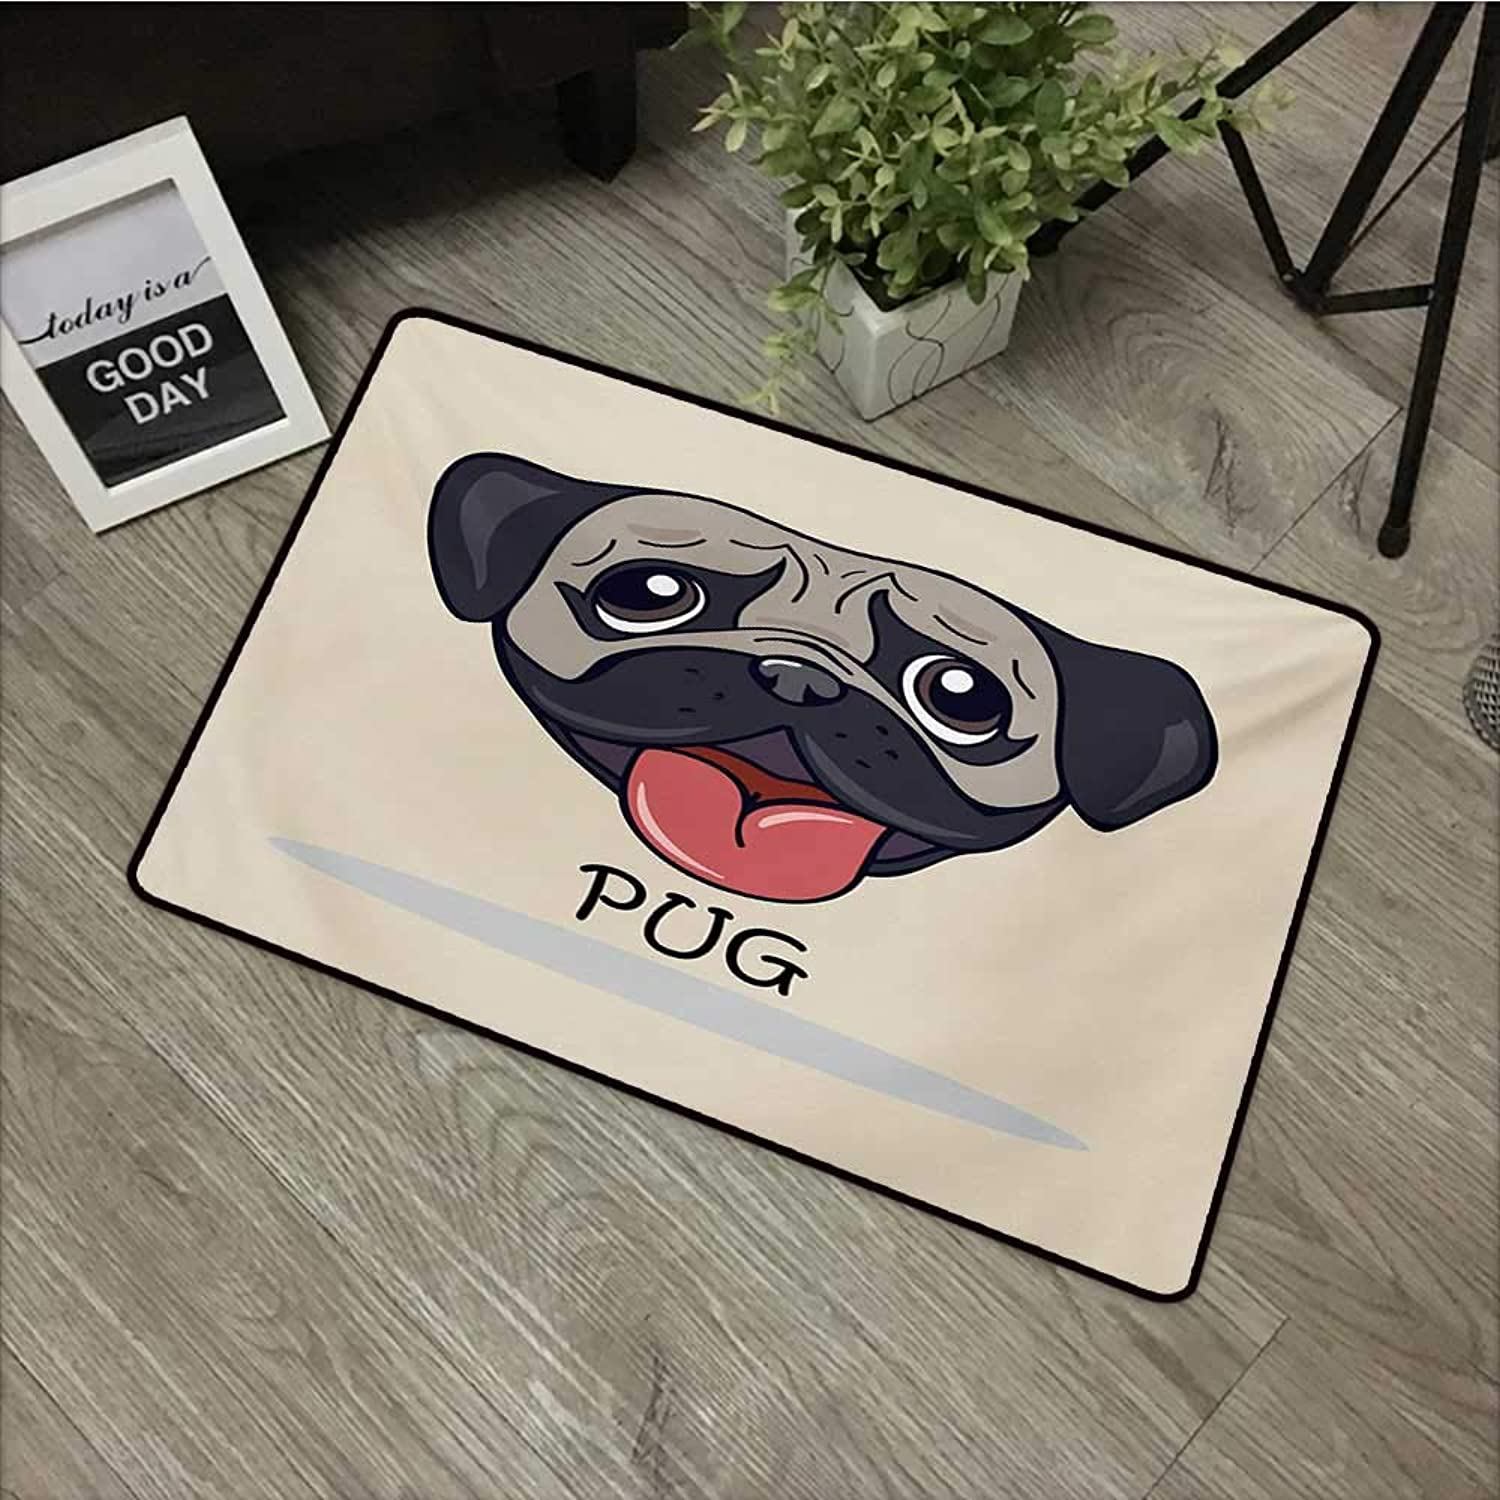 Interior mat W35 x L59 INCH Pug,Cartoon Pug Dog Caricature with Its Tongue Out Happy Face Animal Fun Illustration,Taupe Black Red Non-Slip, with Non-Slip Backing,Non-Slip Door Mat Carpet